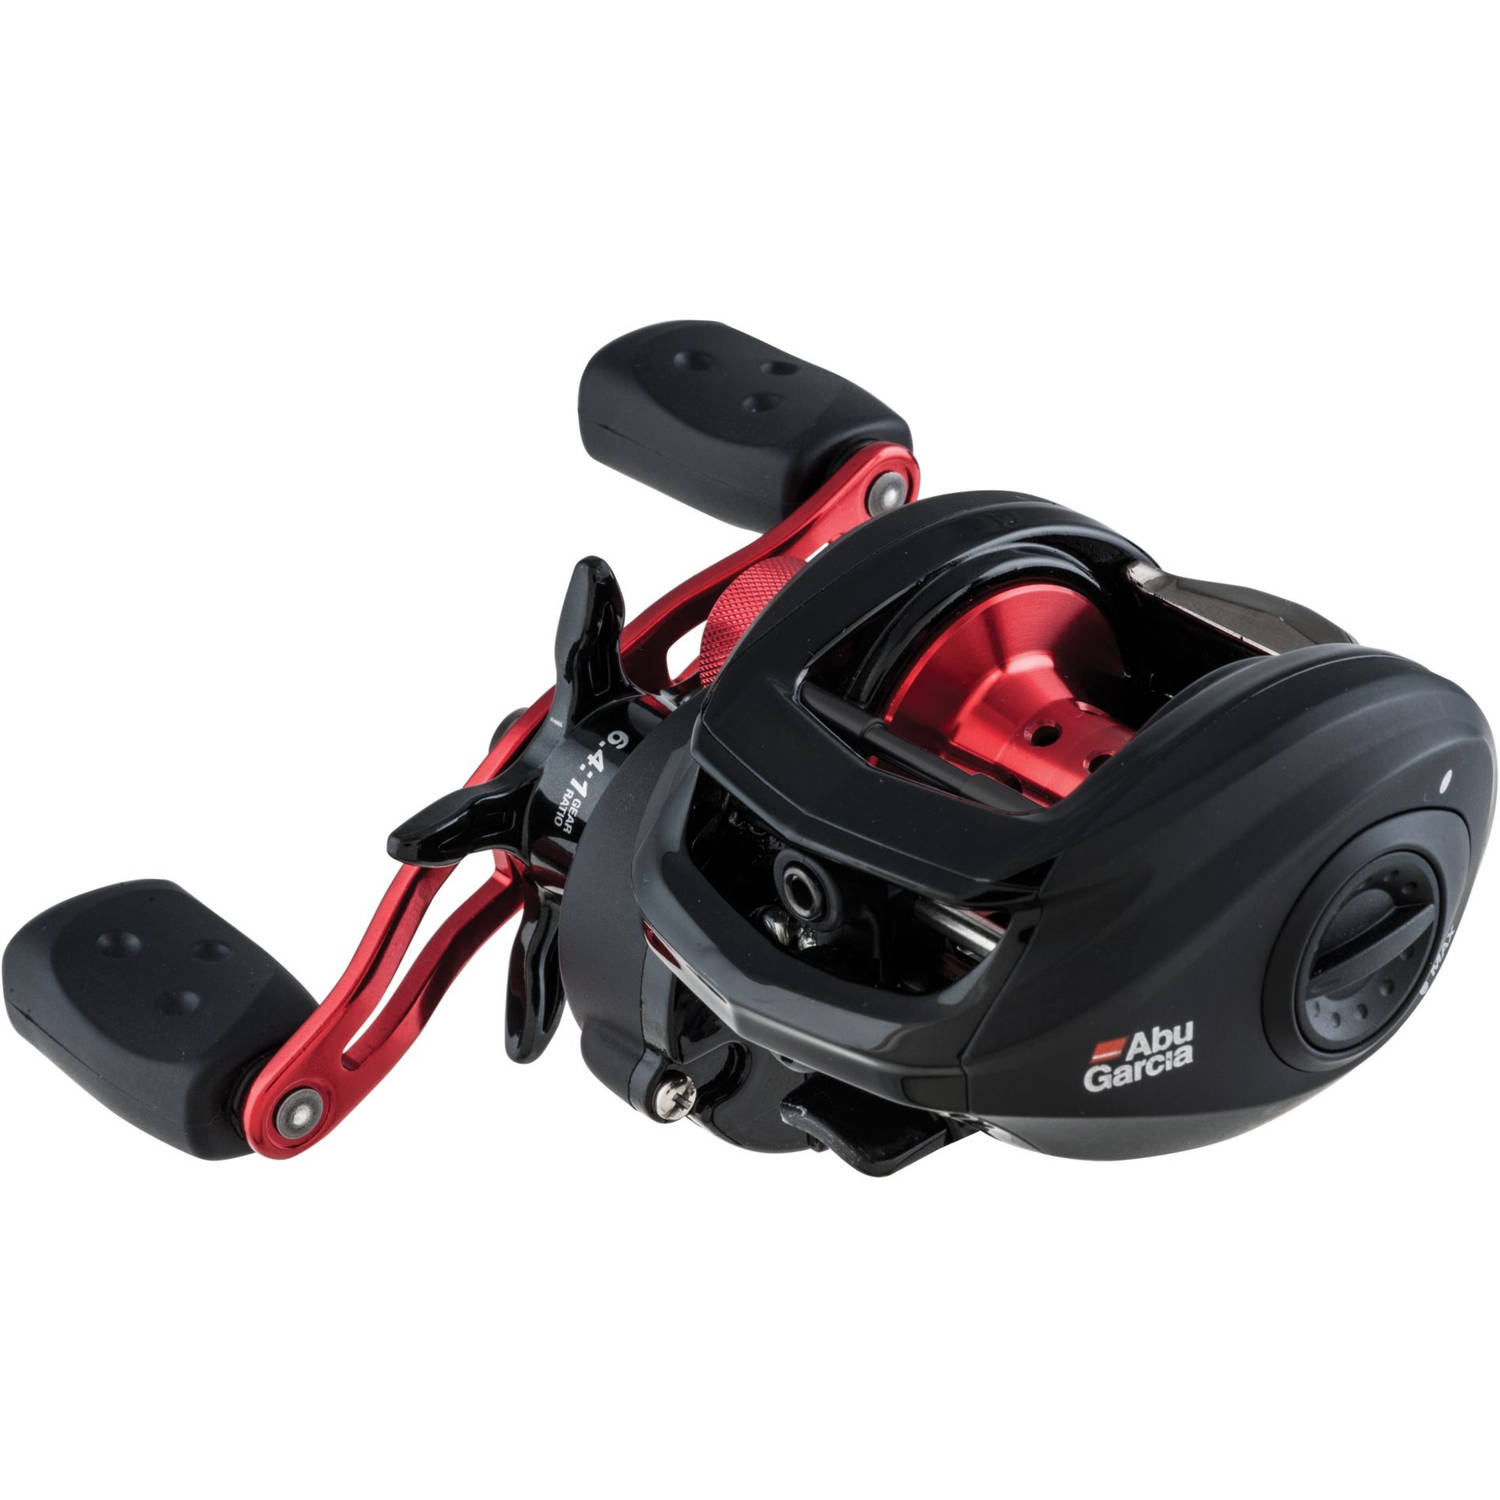 Abu Garcia Black Max Low Profile Baitcast Fishing Reel